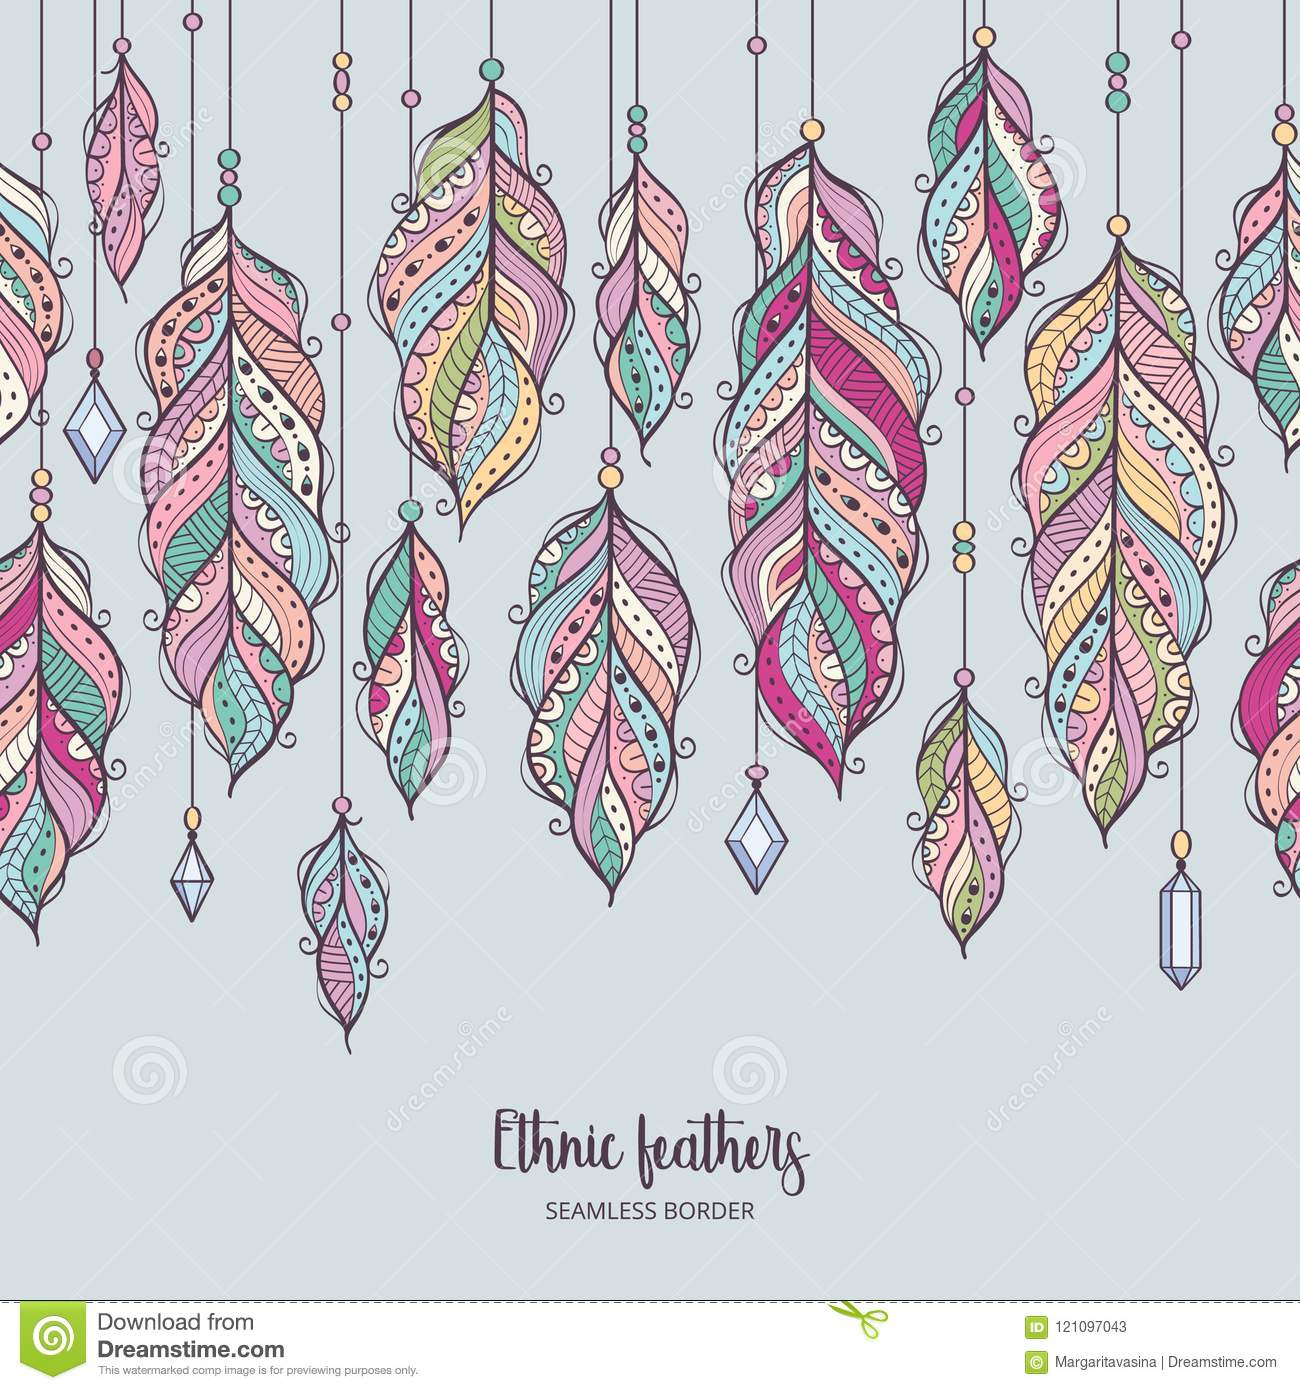 colorful feather background in bohemian style stock vector illustration of bright boho 121097043 https www dreamstime com colorful feather background bohemian style seamless border ethnic feathers crystals vector card design image121097043